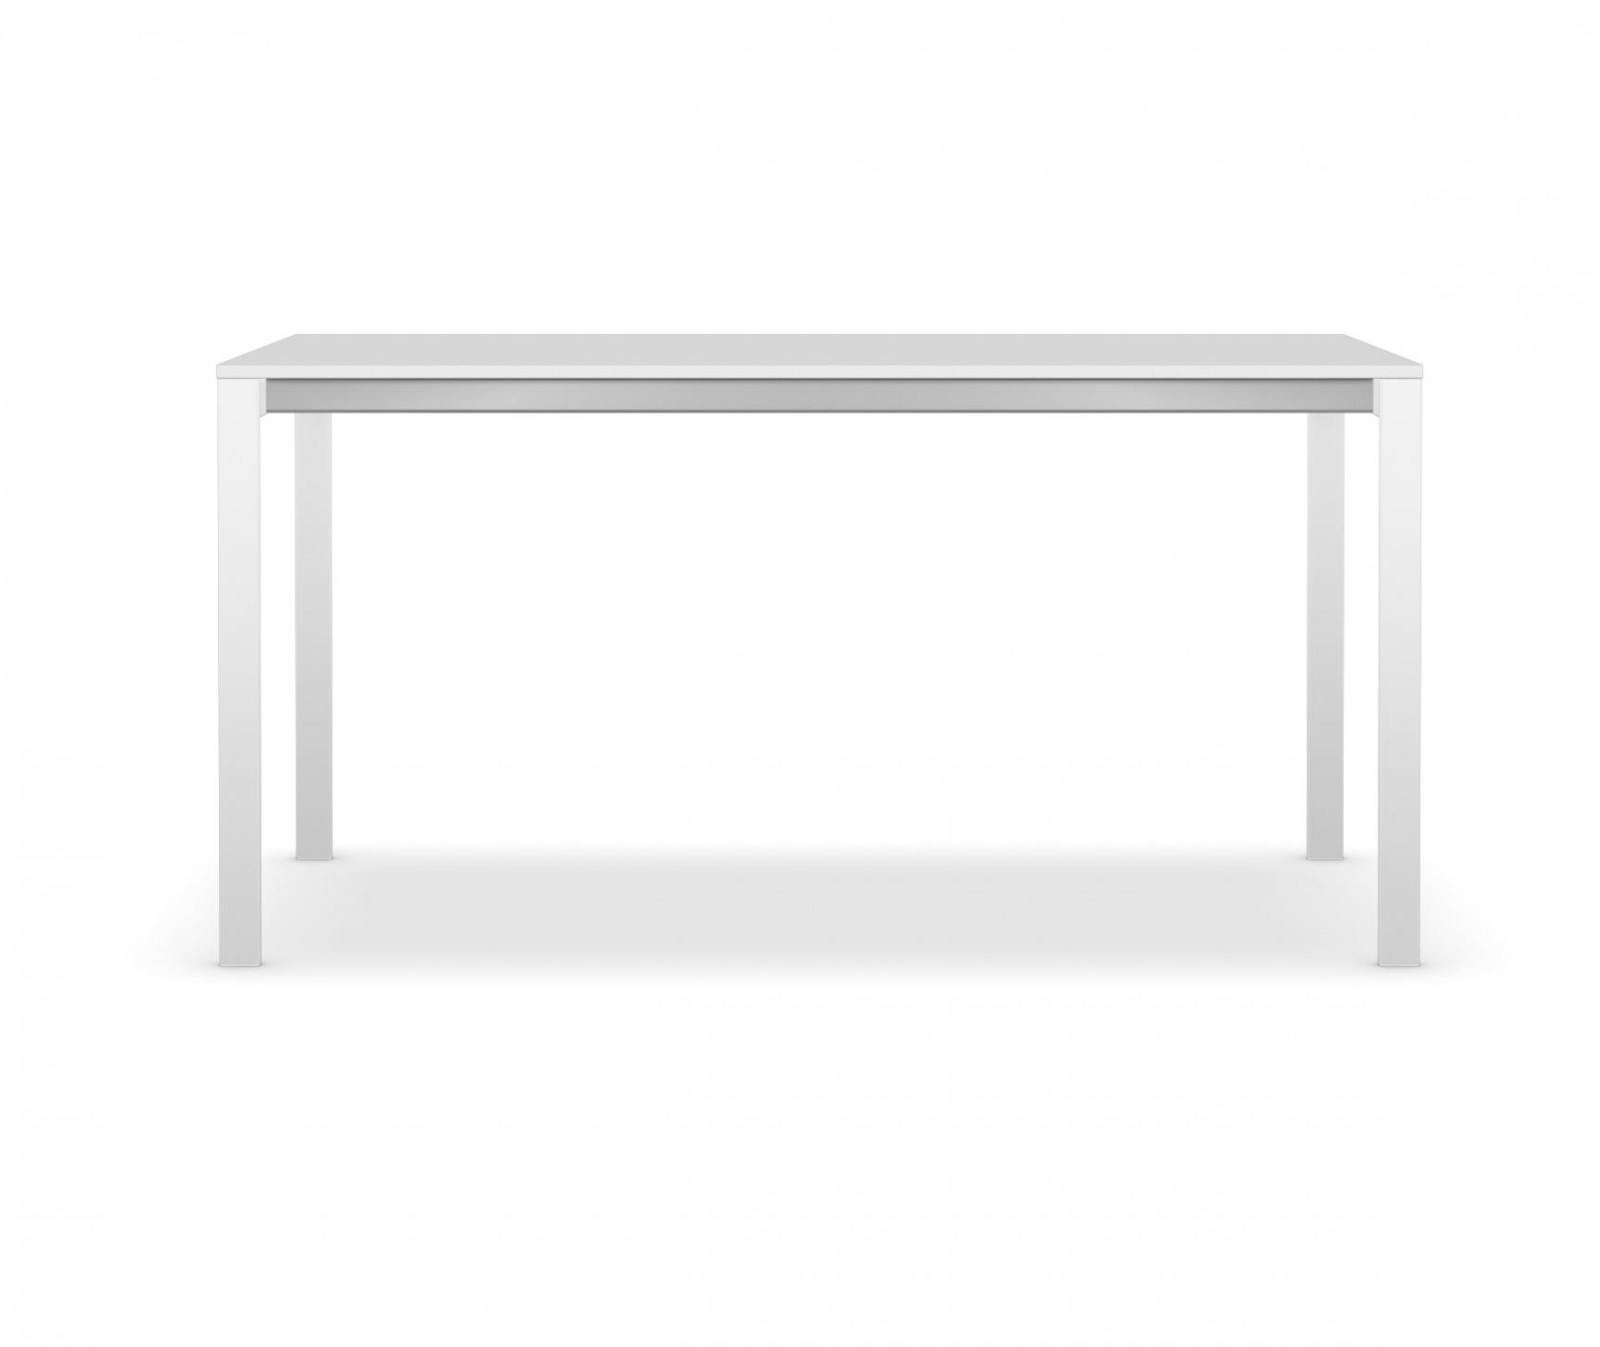 be-Easy Fixed Table White lacquered steel, Kos white 0032 Fenix-NTM®, L150 x D89cm